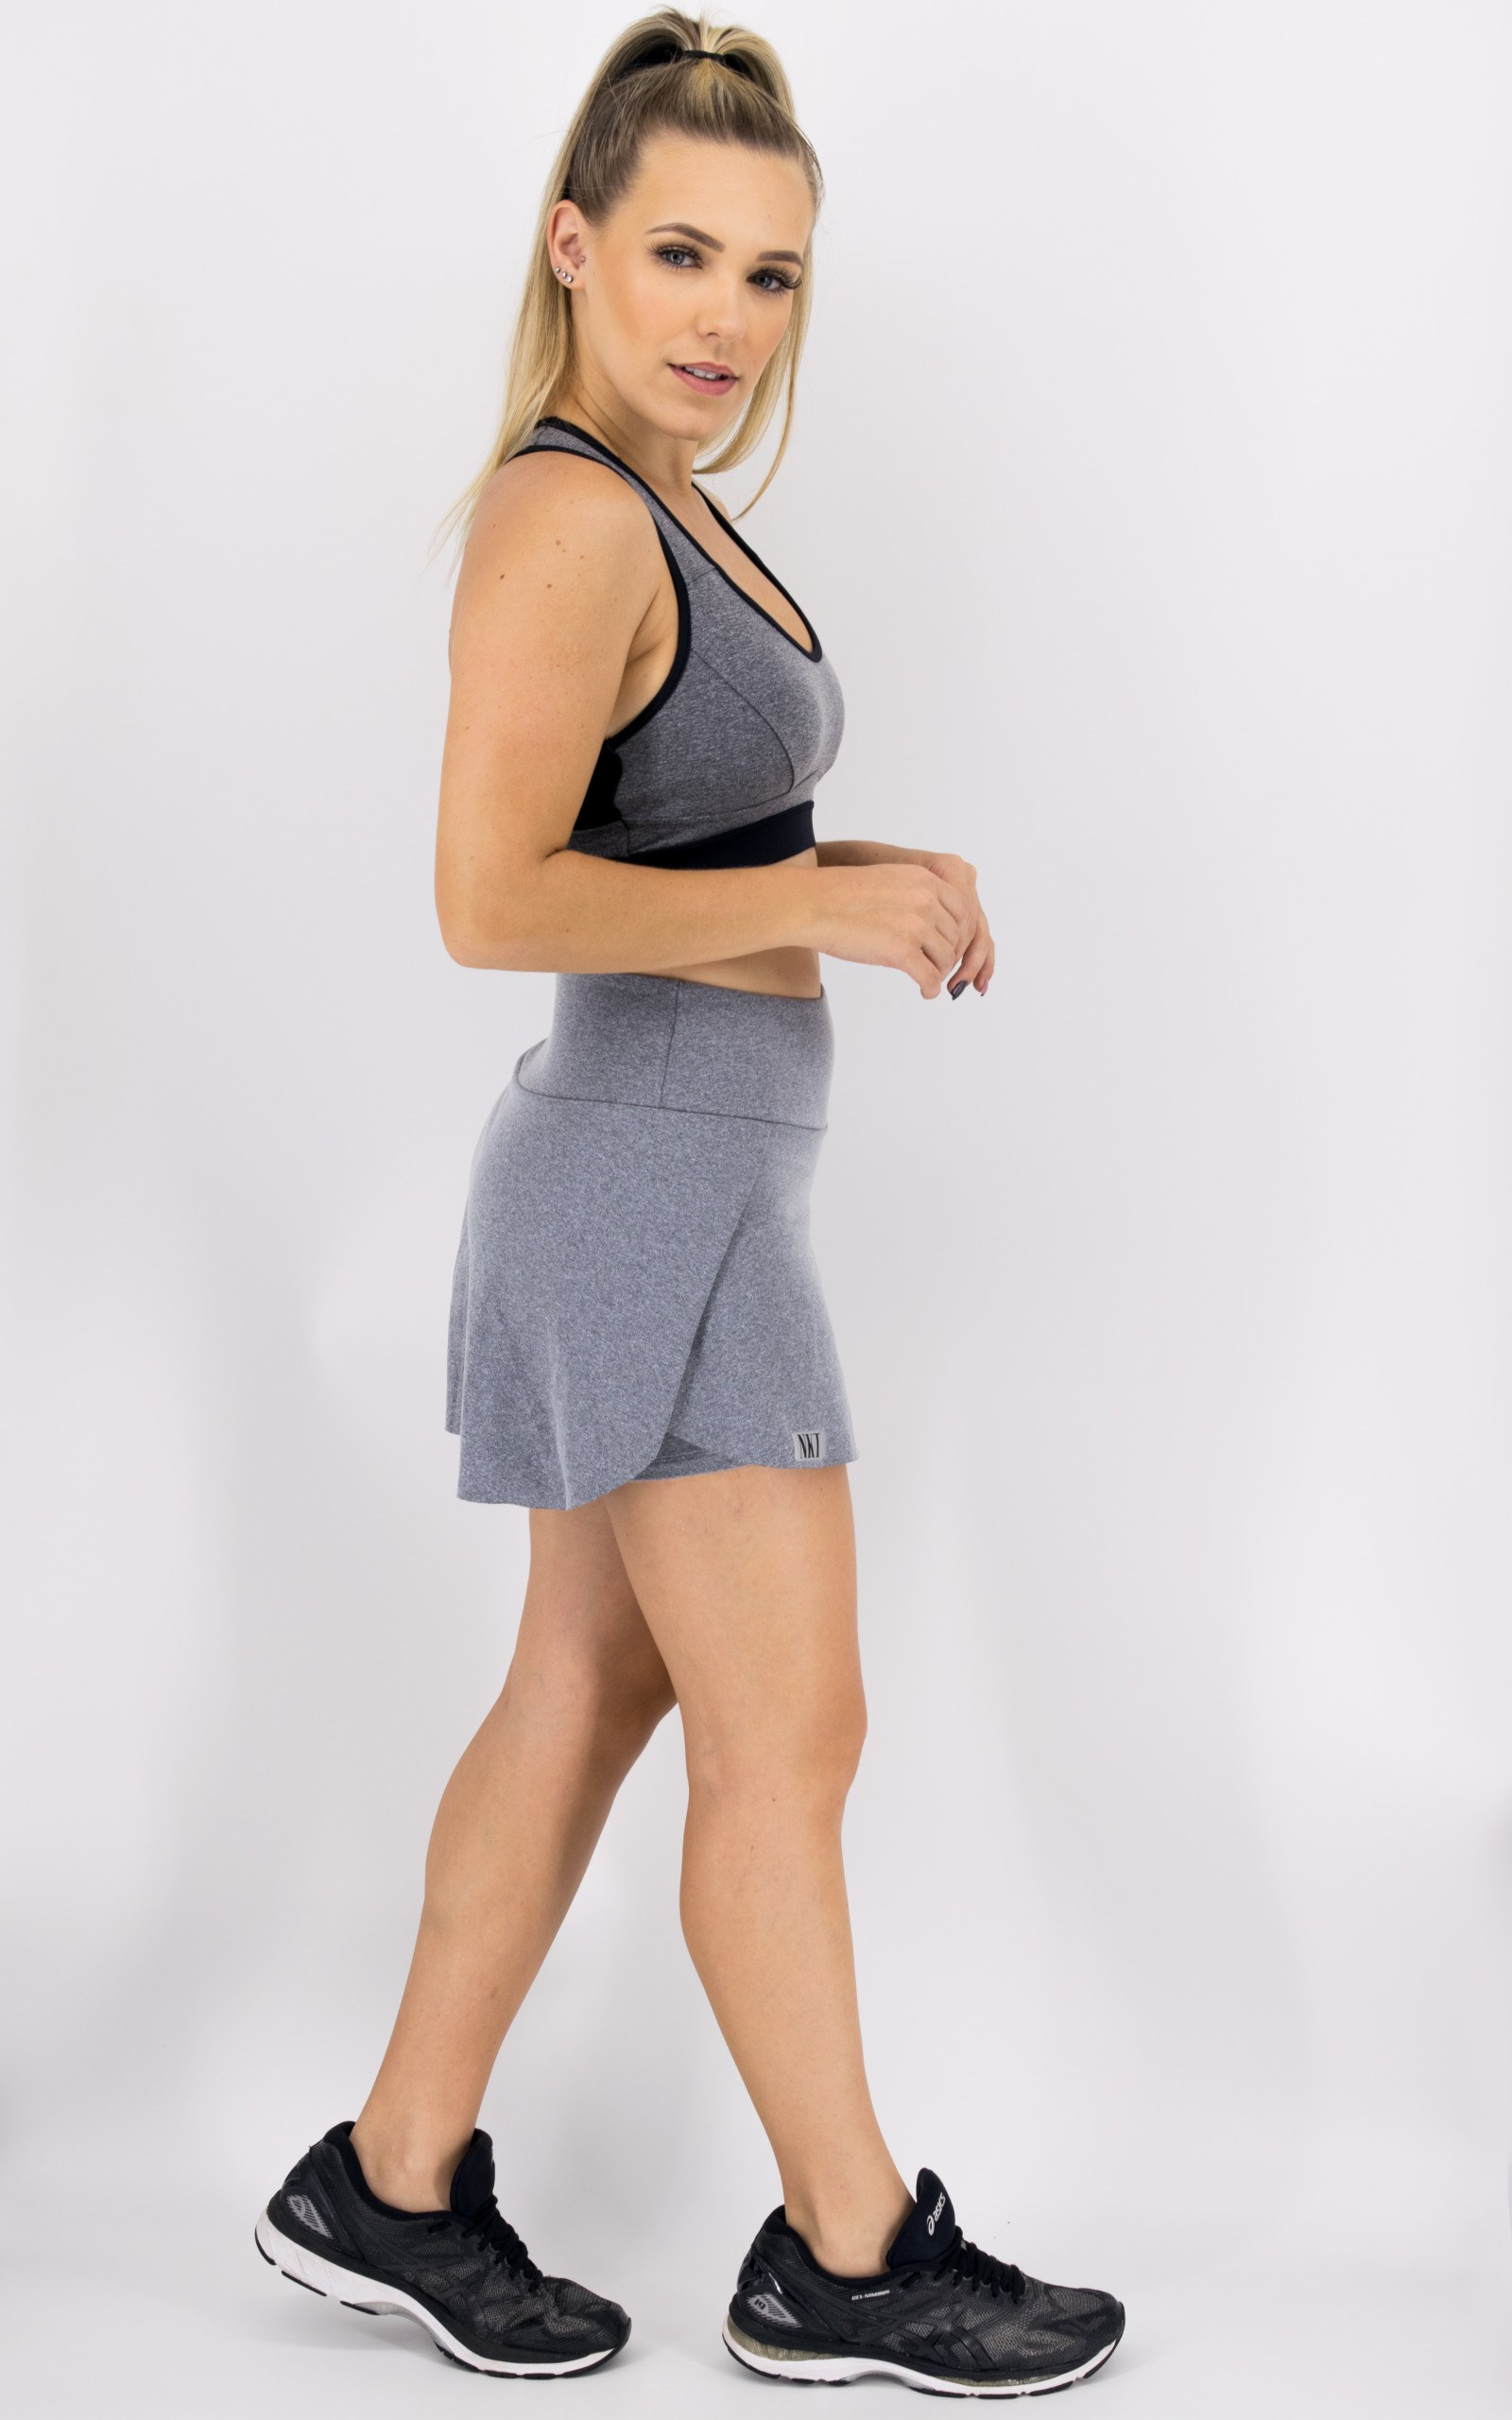 Saia Shorts Magic Mescla, Coleção Move Your Body - NKT Fitwear Moda Fitness